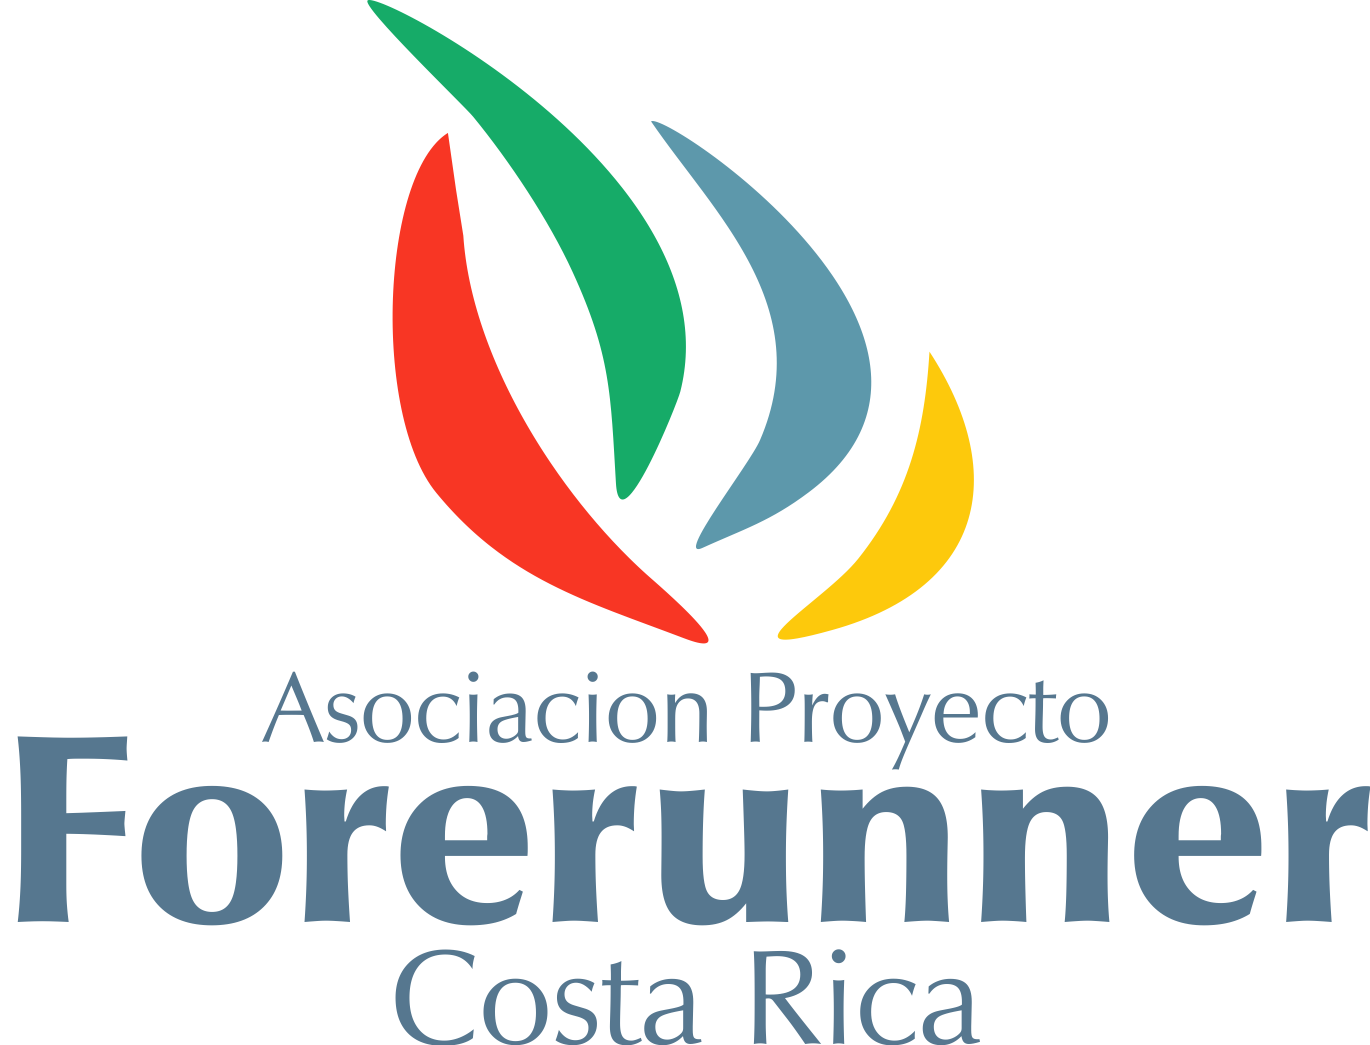 Costa Rica Association Logo Verticle - 2013